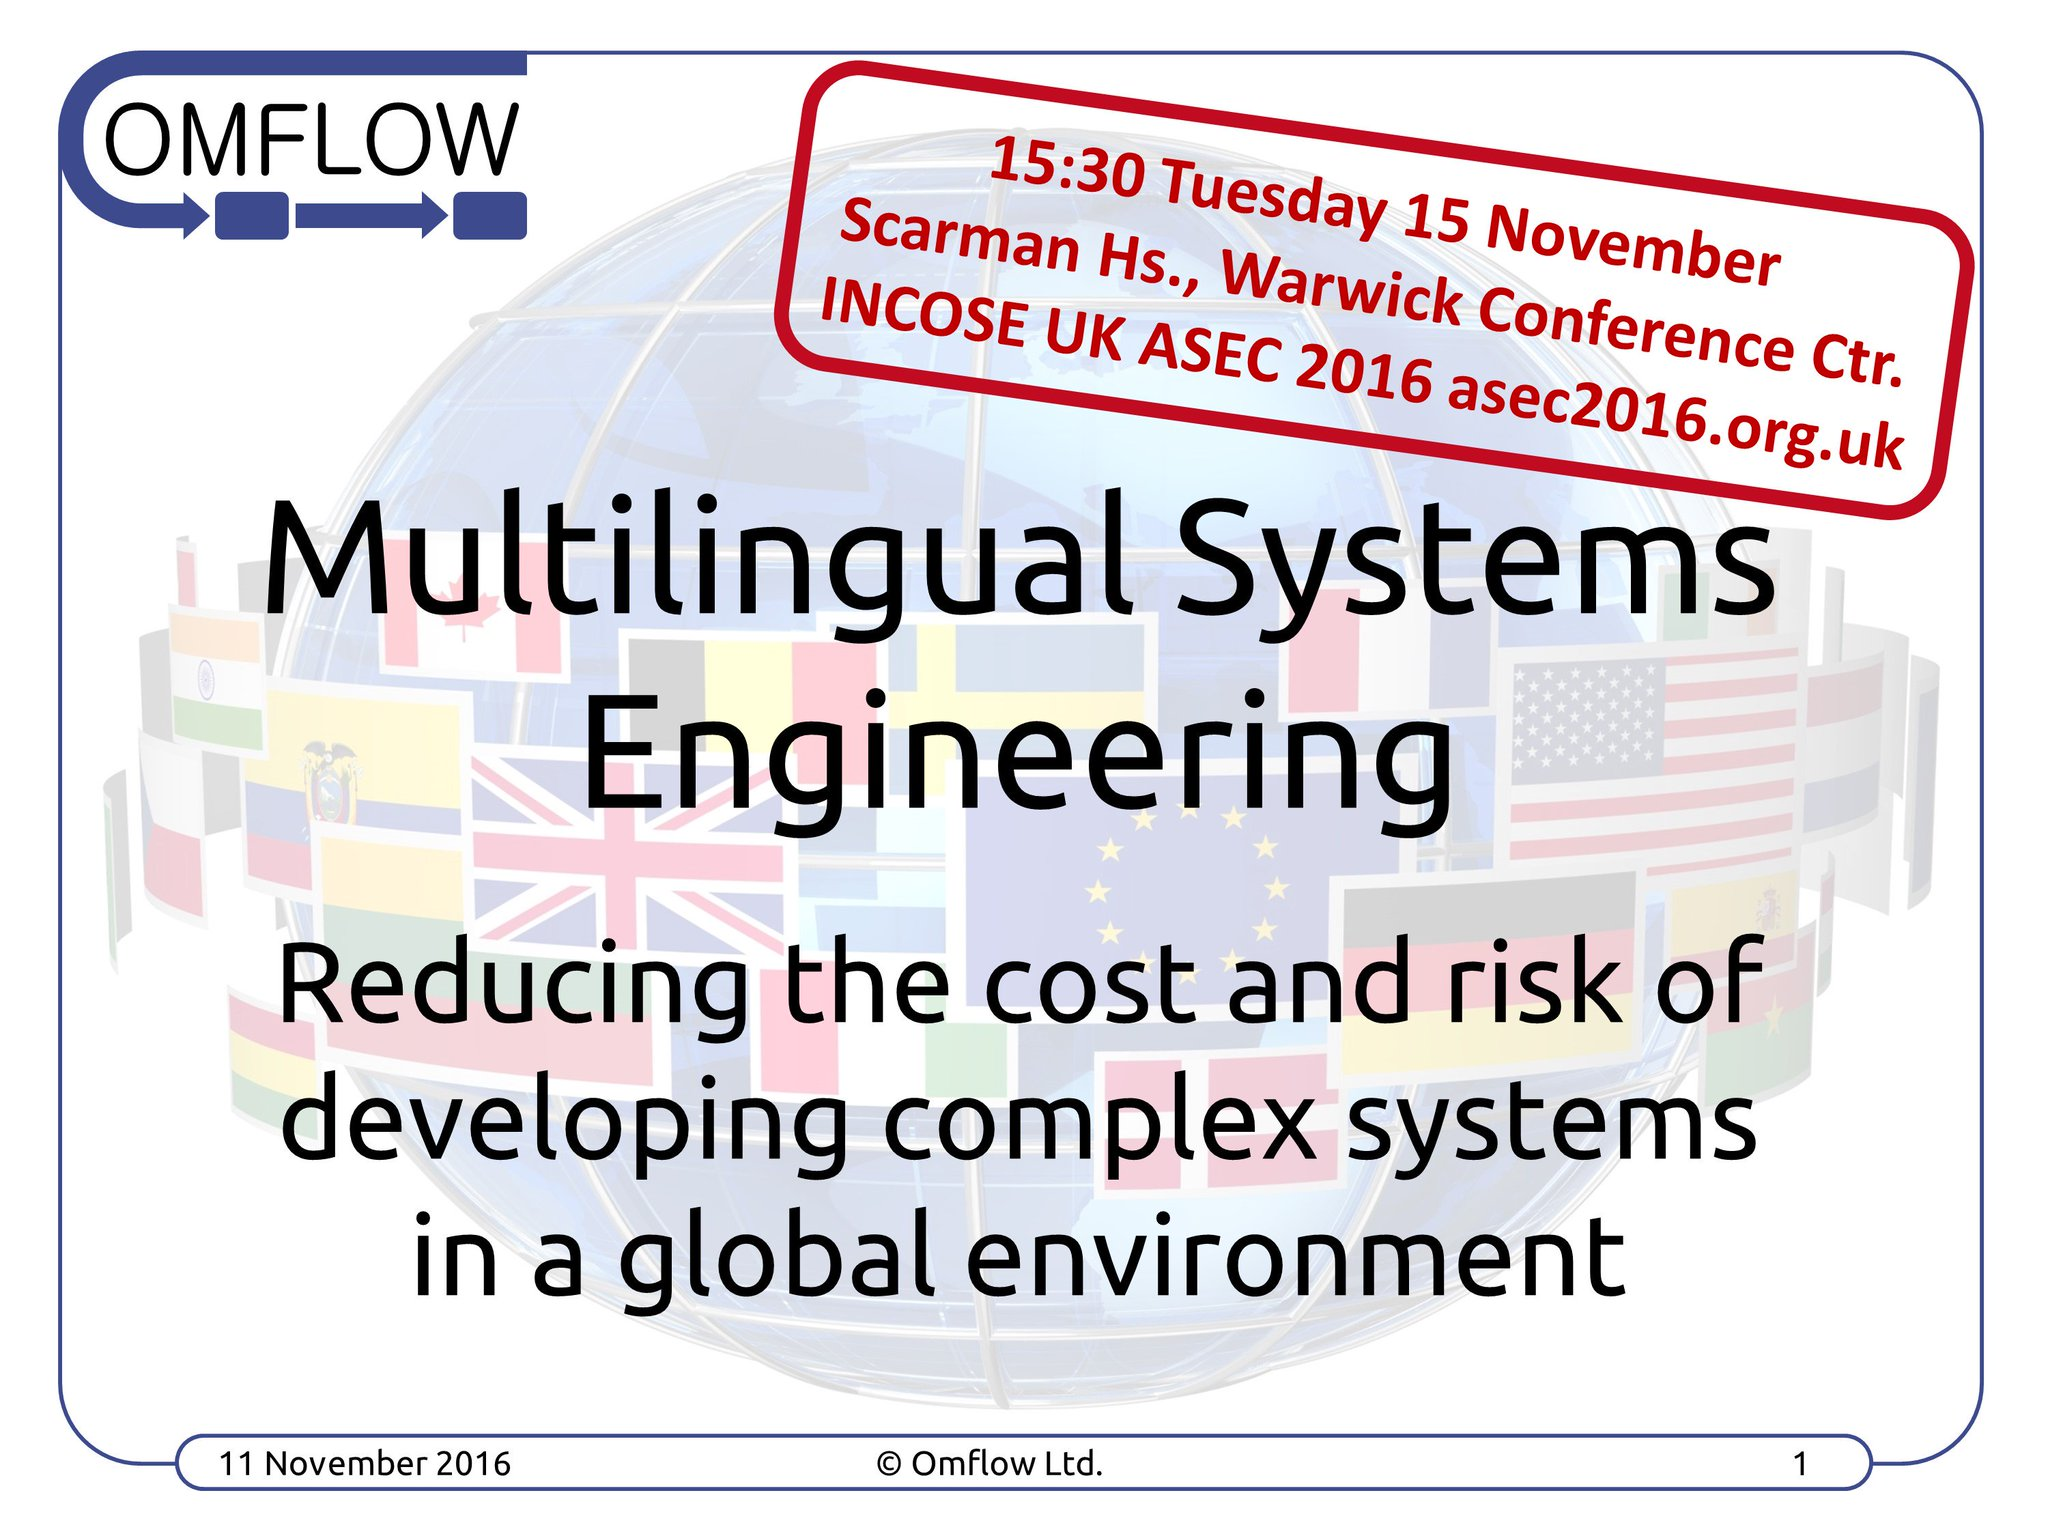 Join us in 1 week @INCOSEUK #ASEC2016 conf & learn benefits of Multilingual Systems Engineering for your org #INCOSE #SystemsThinking #xl8 https://t.co/zUiRoaGSH4